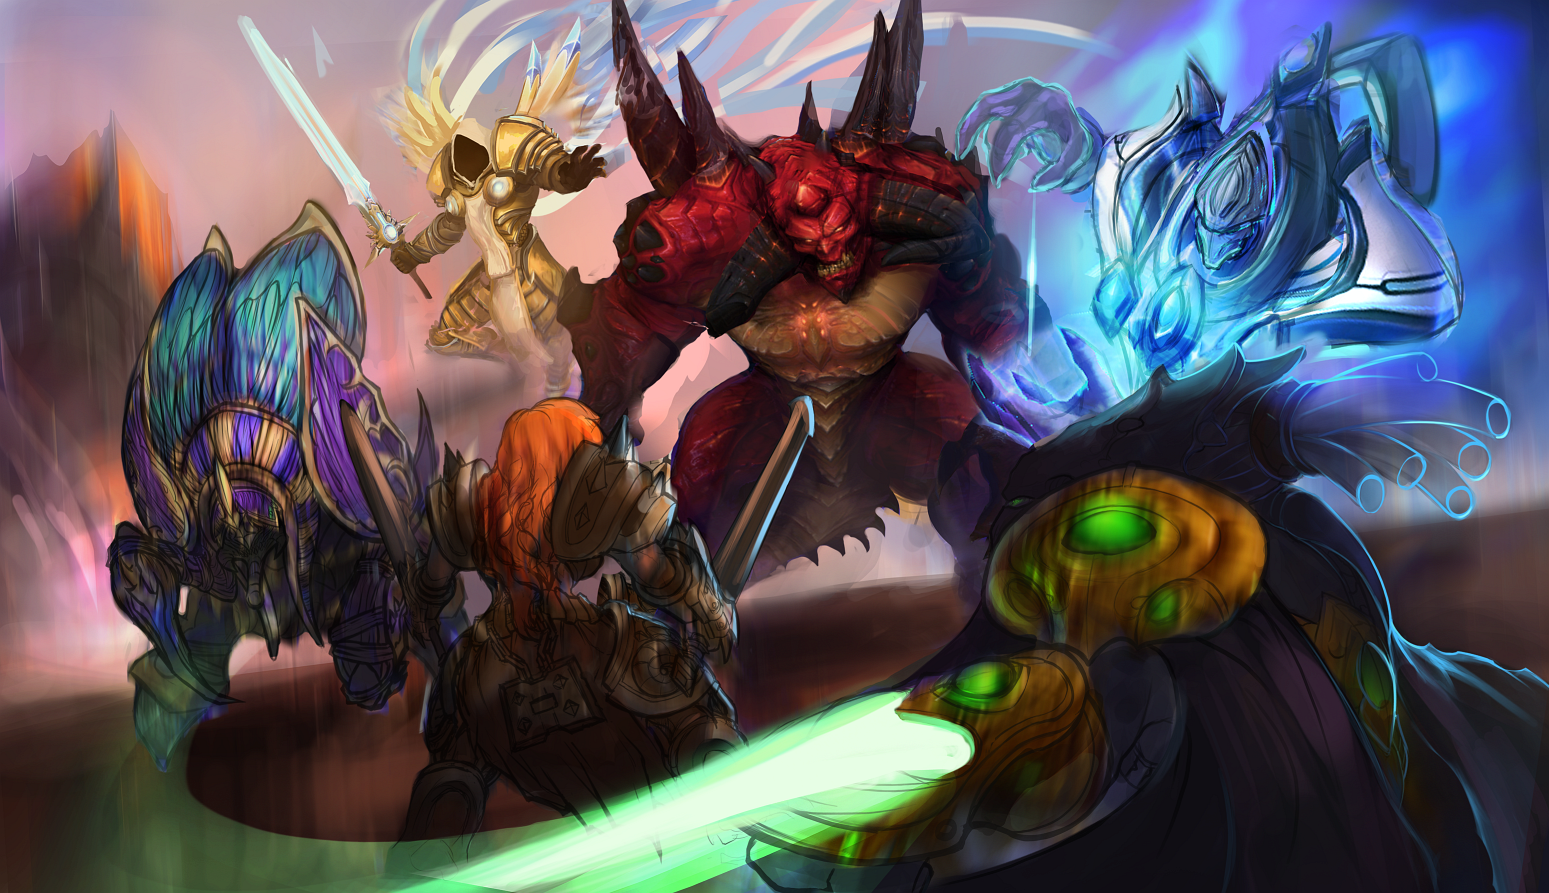 ultimate_fight___wip4_by_umta-d92bvh1.png